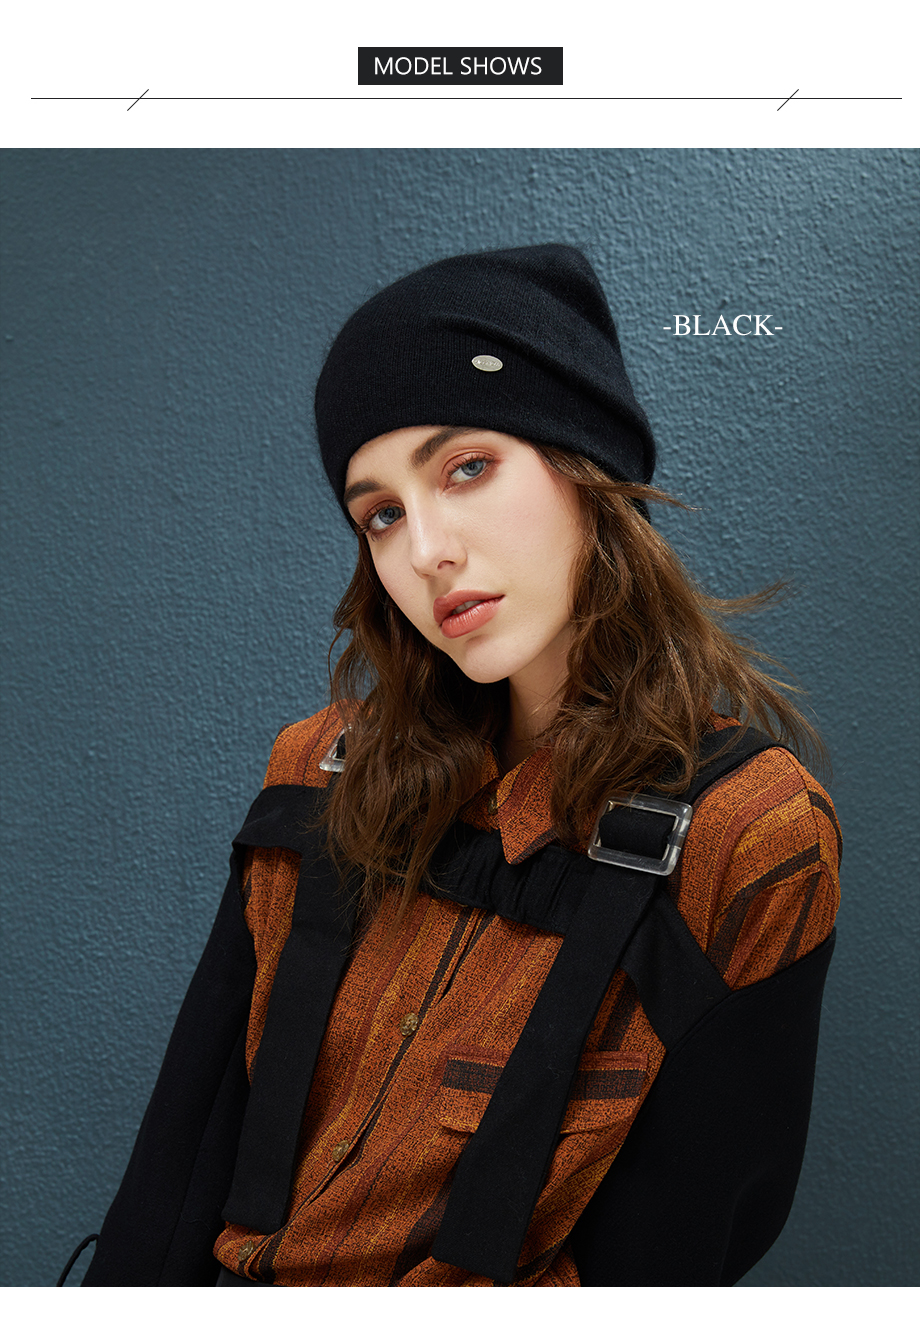 Winter Hats For Woman 2018 New Beanies Knitted Solid Cute Hat Girls Autumn Female Beanie Warmer Bonnet Ladies Casual Cap 8 Color (4)